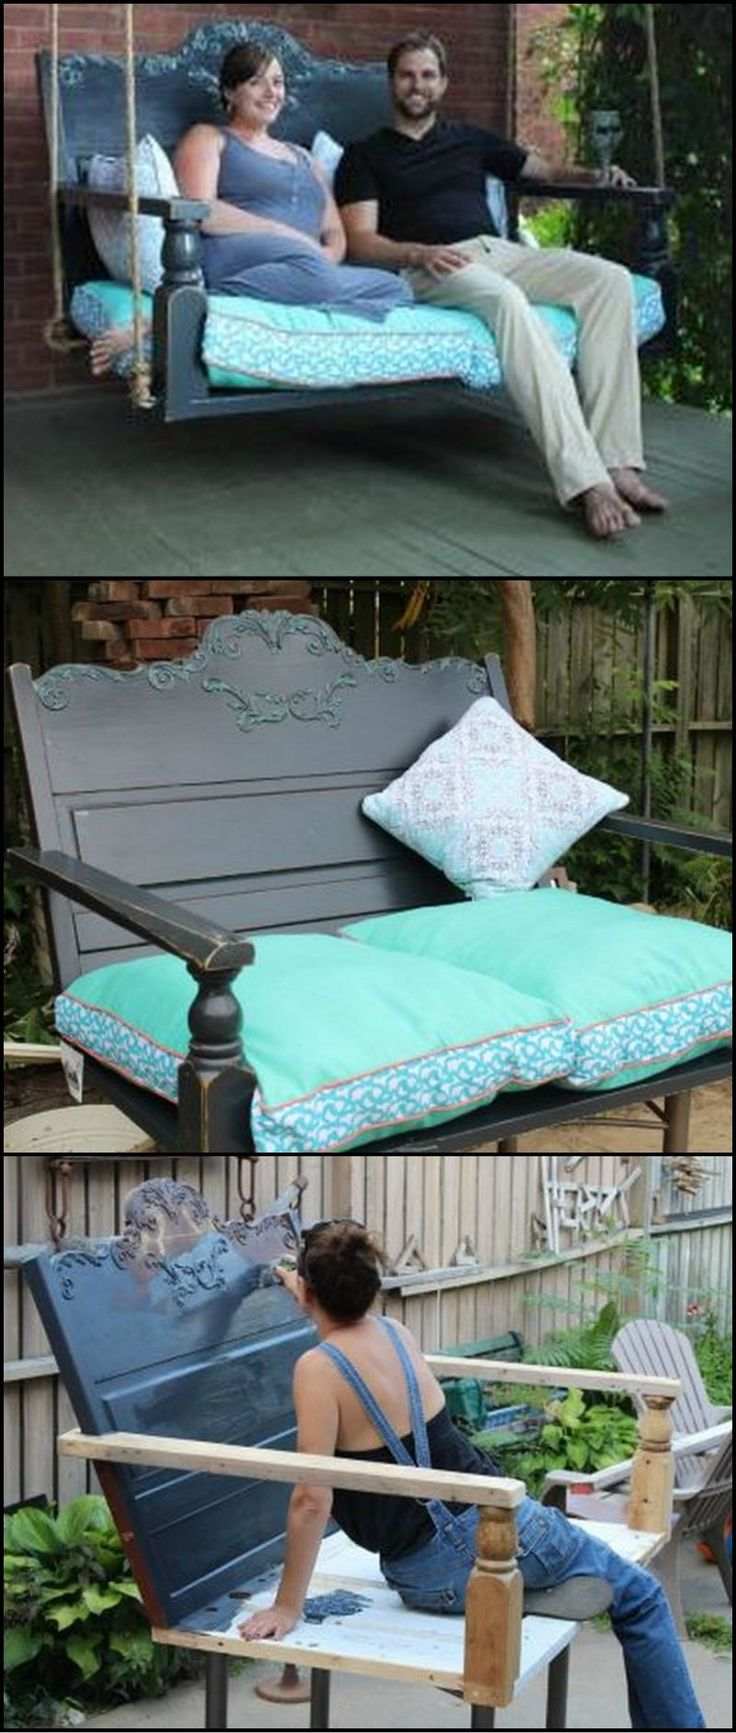 How To Build A Porch Swing From A Recycled Headboard http://theownerbuildernetwork.co/a94g This is a great way of repurposing a headboard that has seen better days. Turn it into a porch swing!